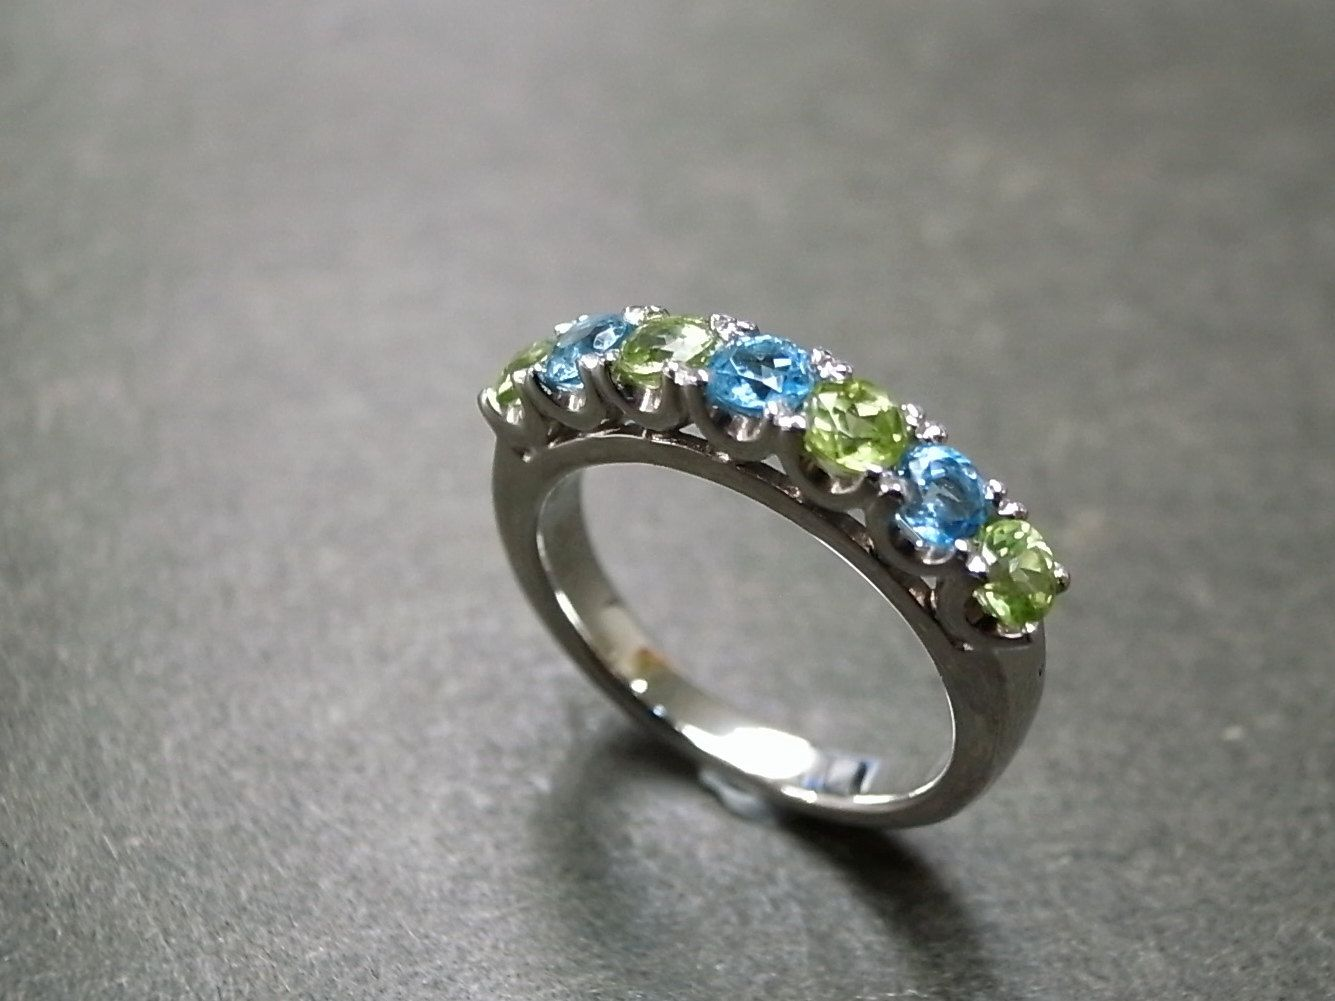 wedding jewelry engagement bands band botanical set flower silver pin peridot sterling nature ring rings